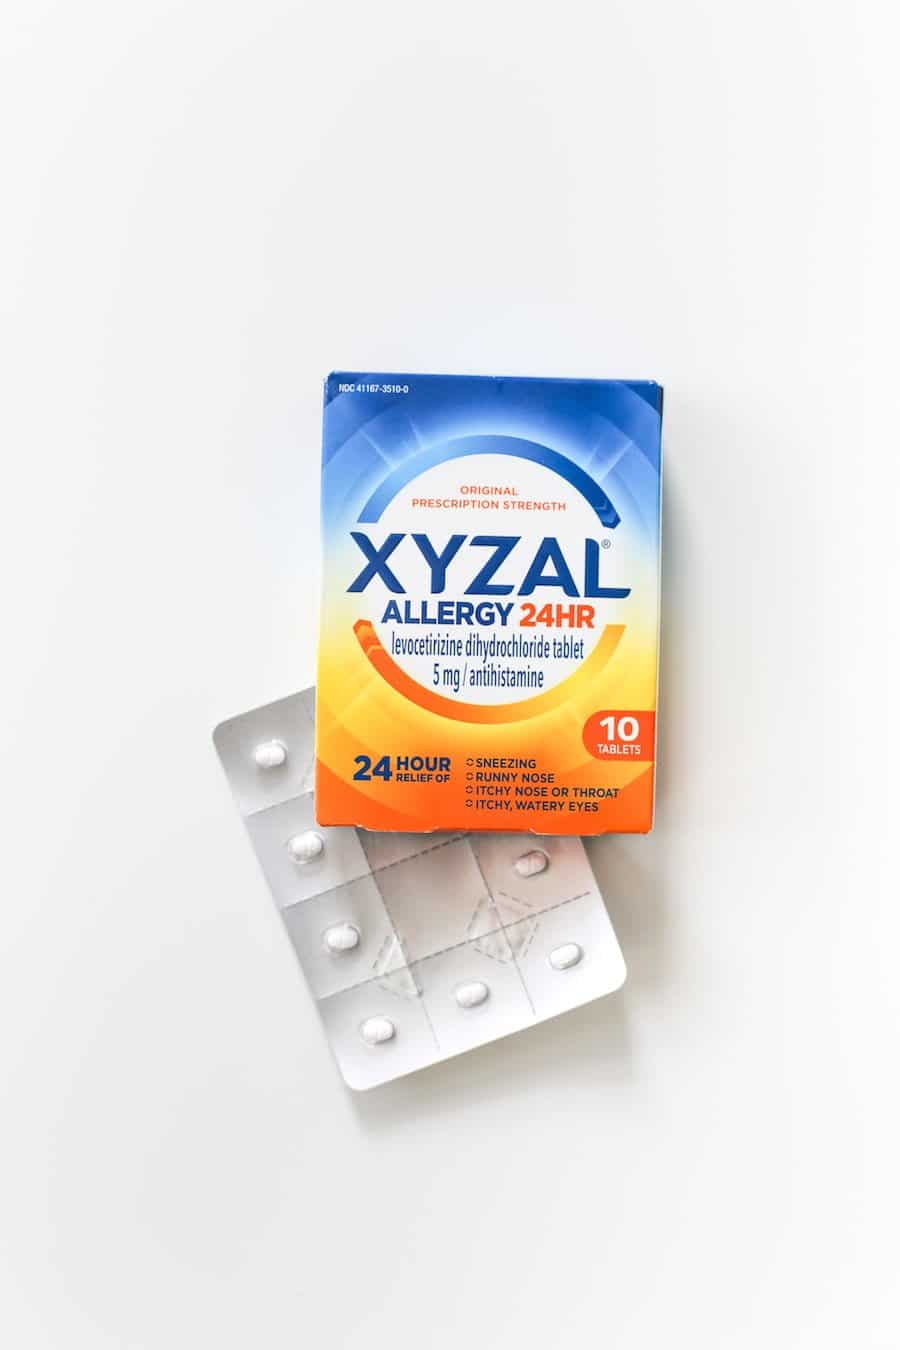 Xyzal-Allergy-Relief-Salty-Canary (1 of 3) copy